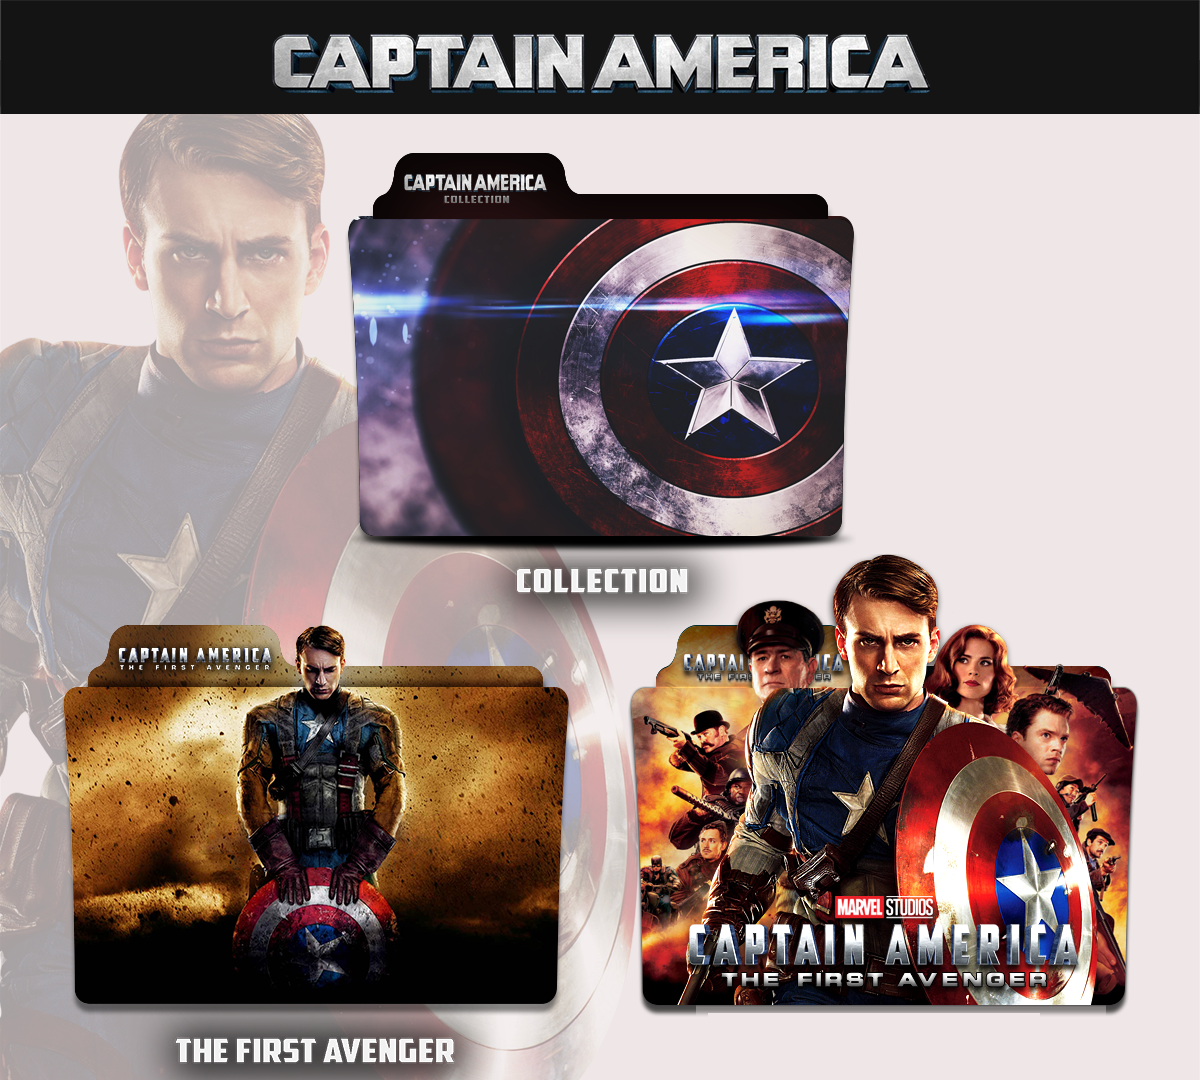 Captain America The First Avenger 2011 Icon Pack By Iamoshmishra On Deviantart